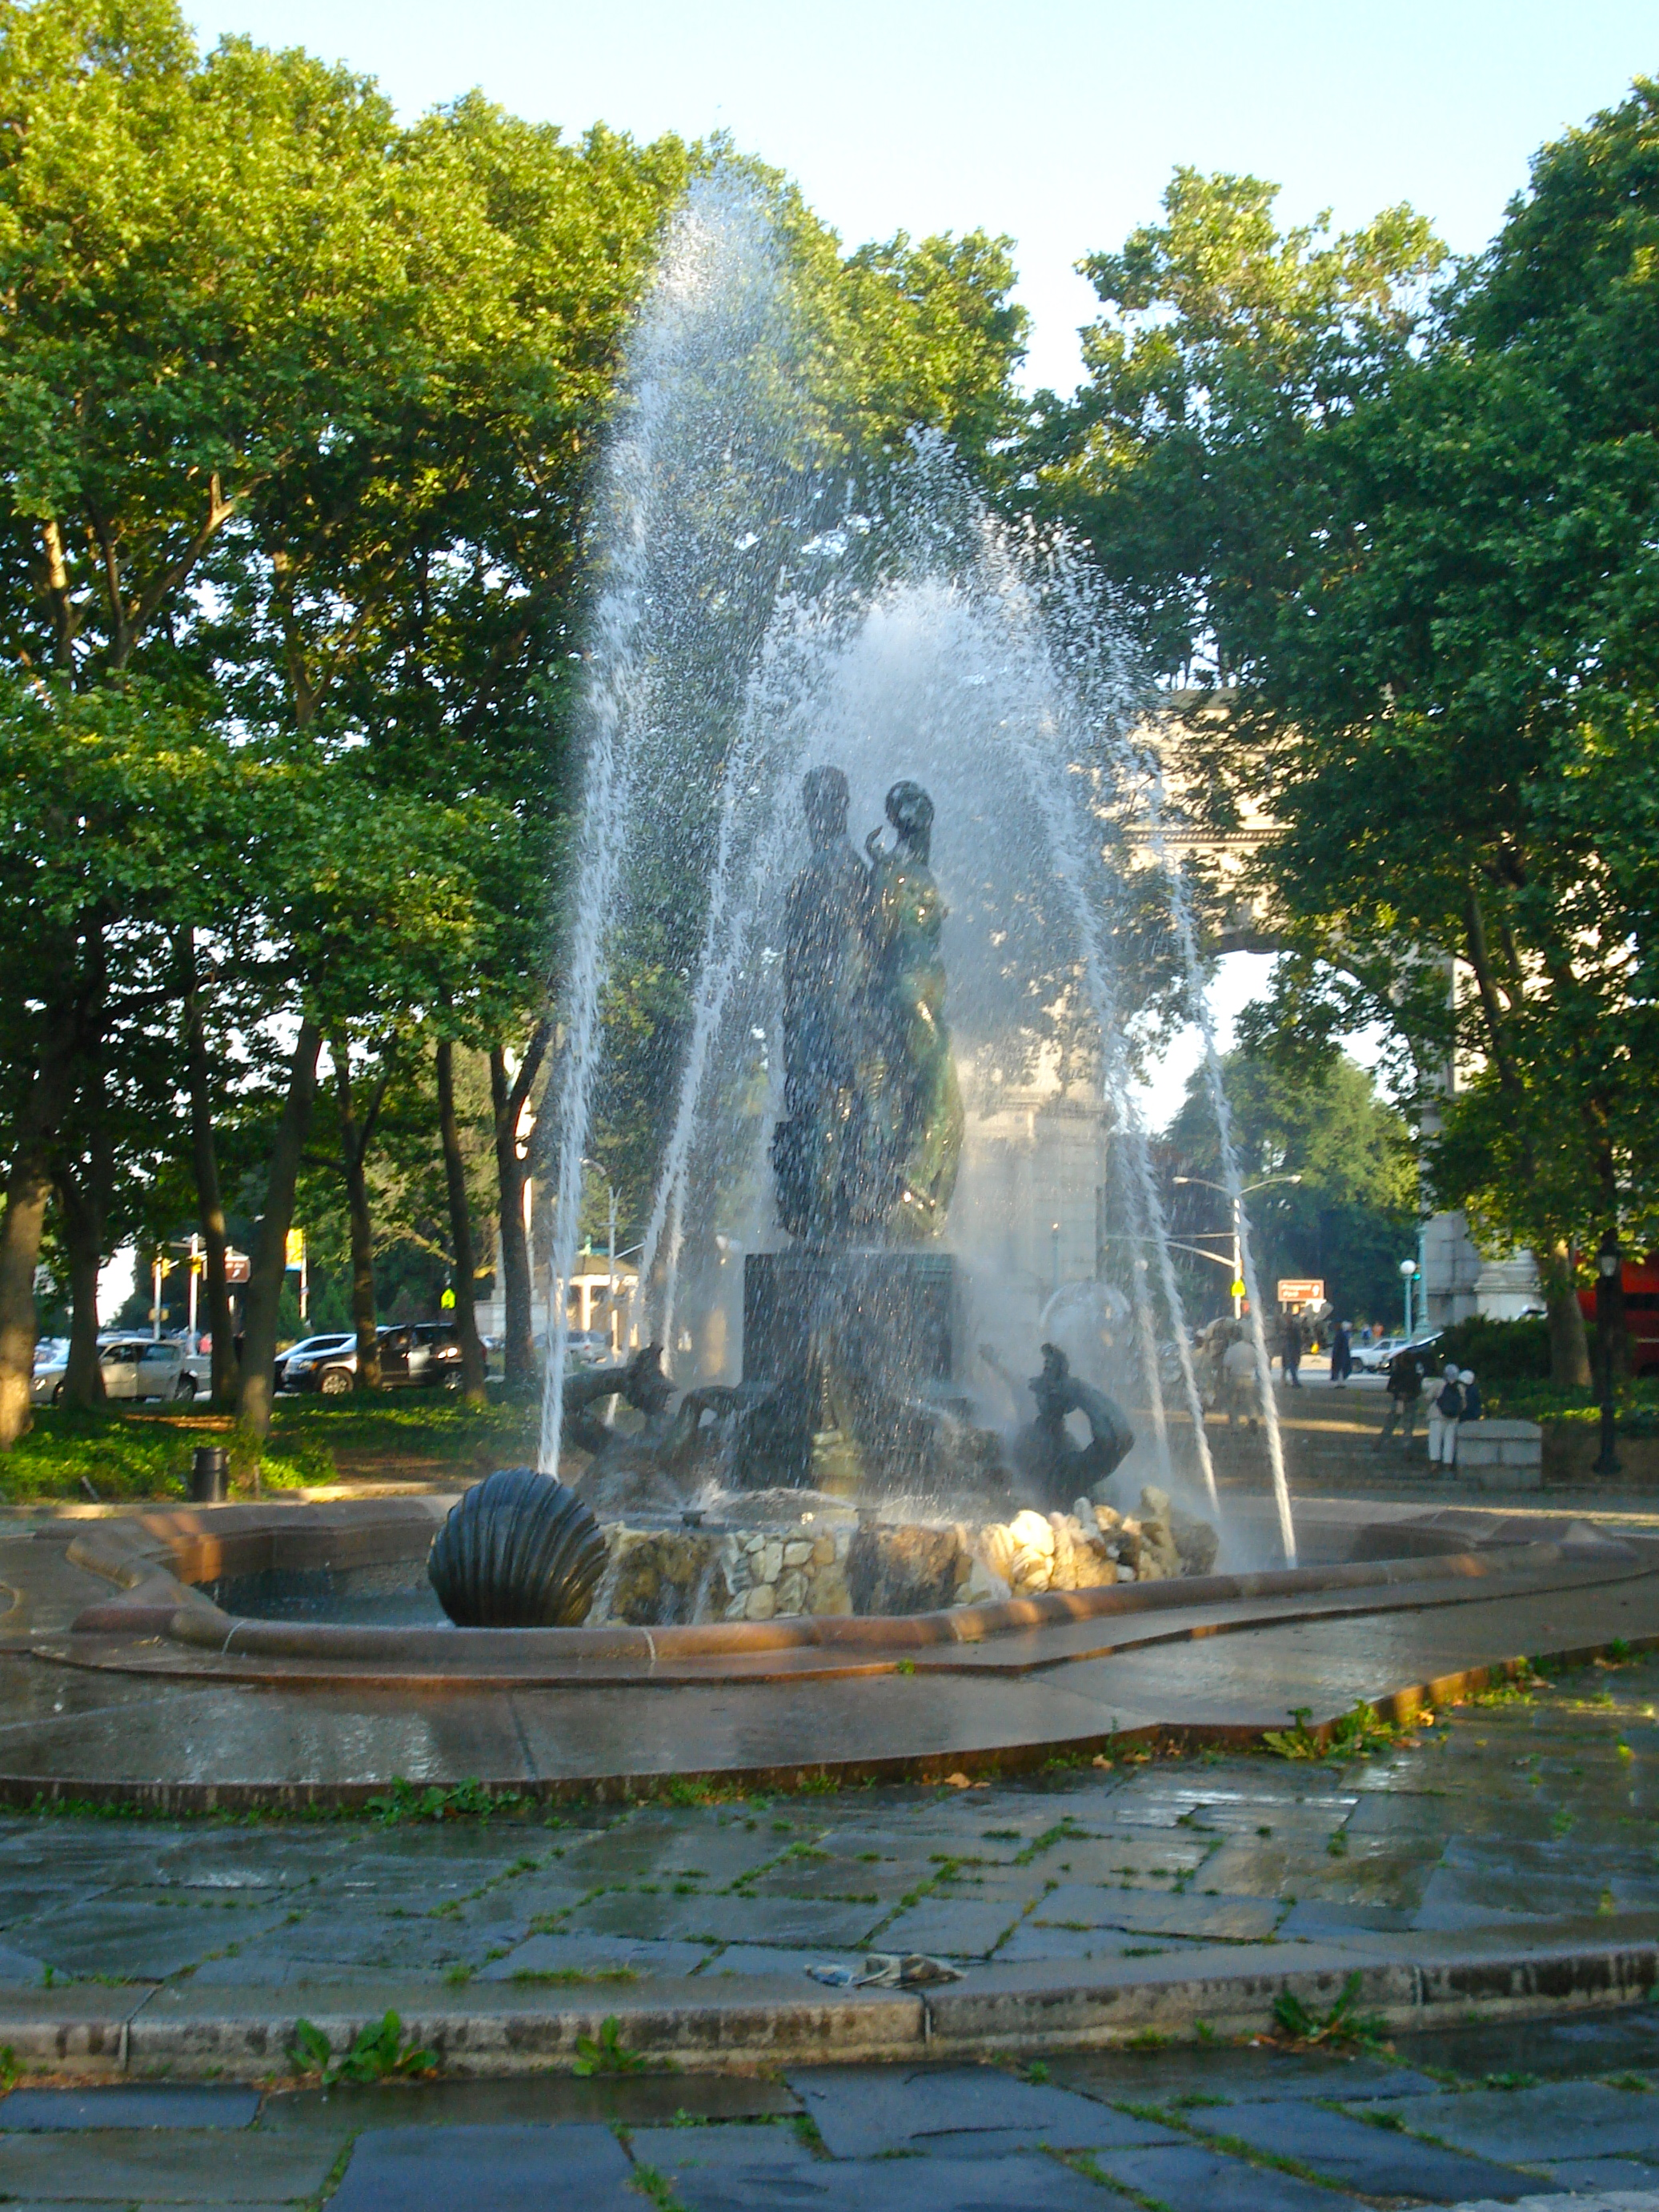 The Fountain at Grand Army Plaza.